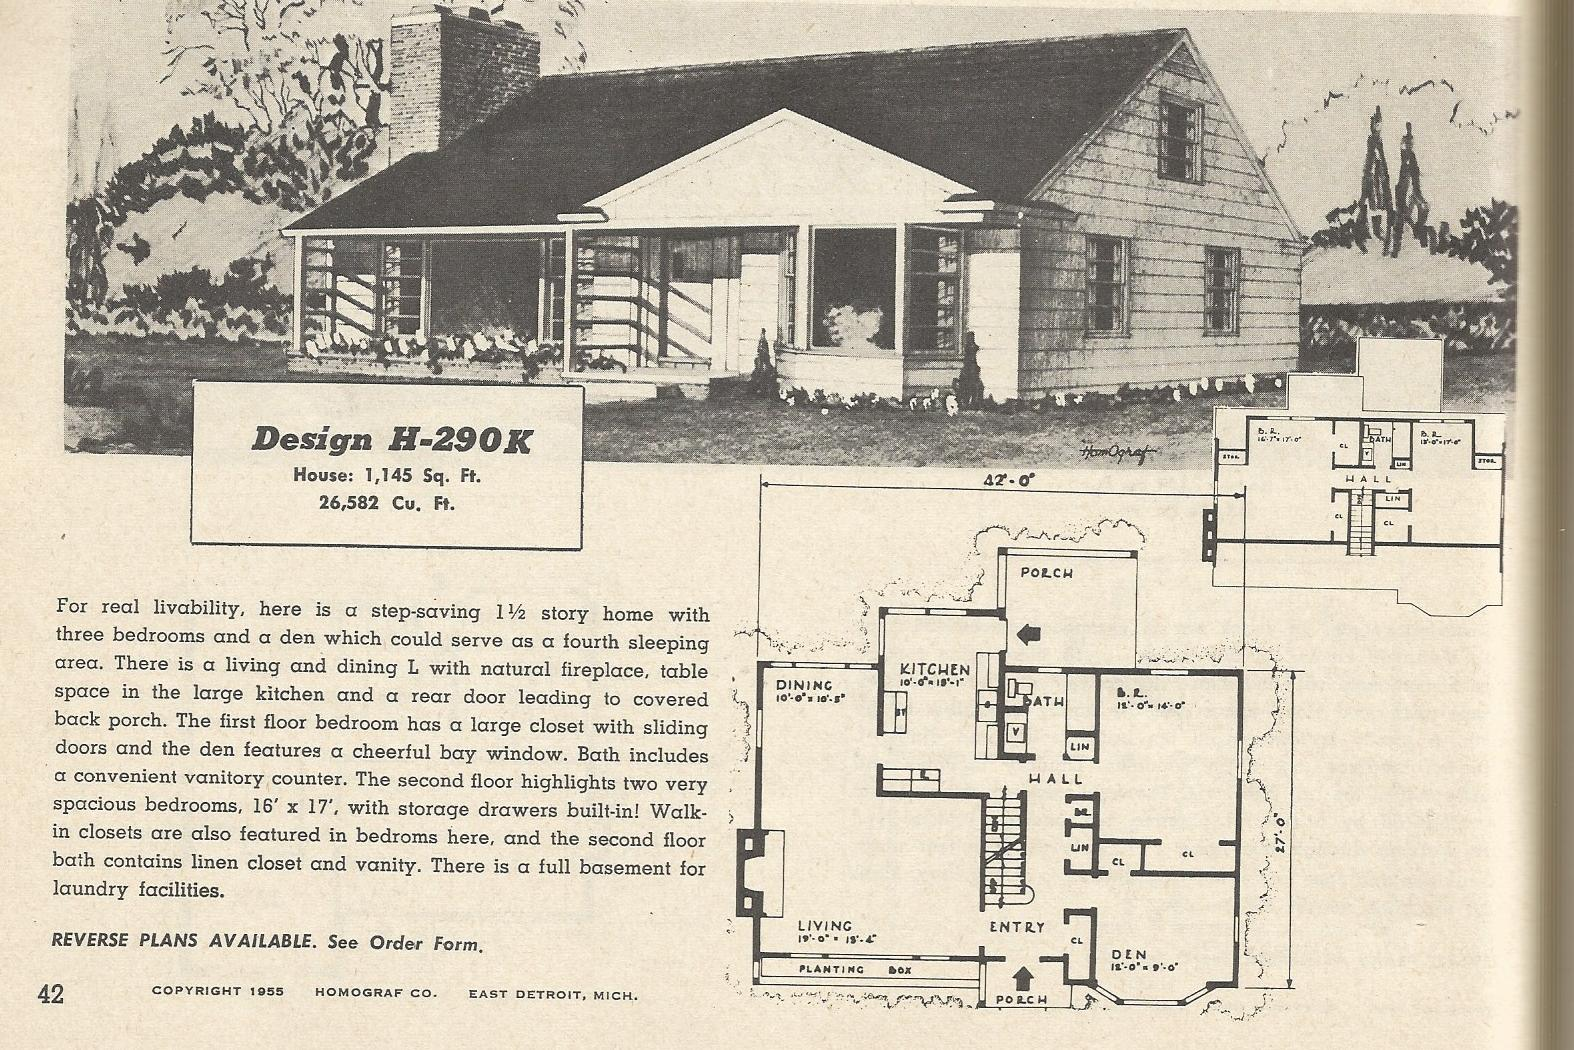 Vintage house plans 290 antique alter ego for Retro modern house plans